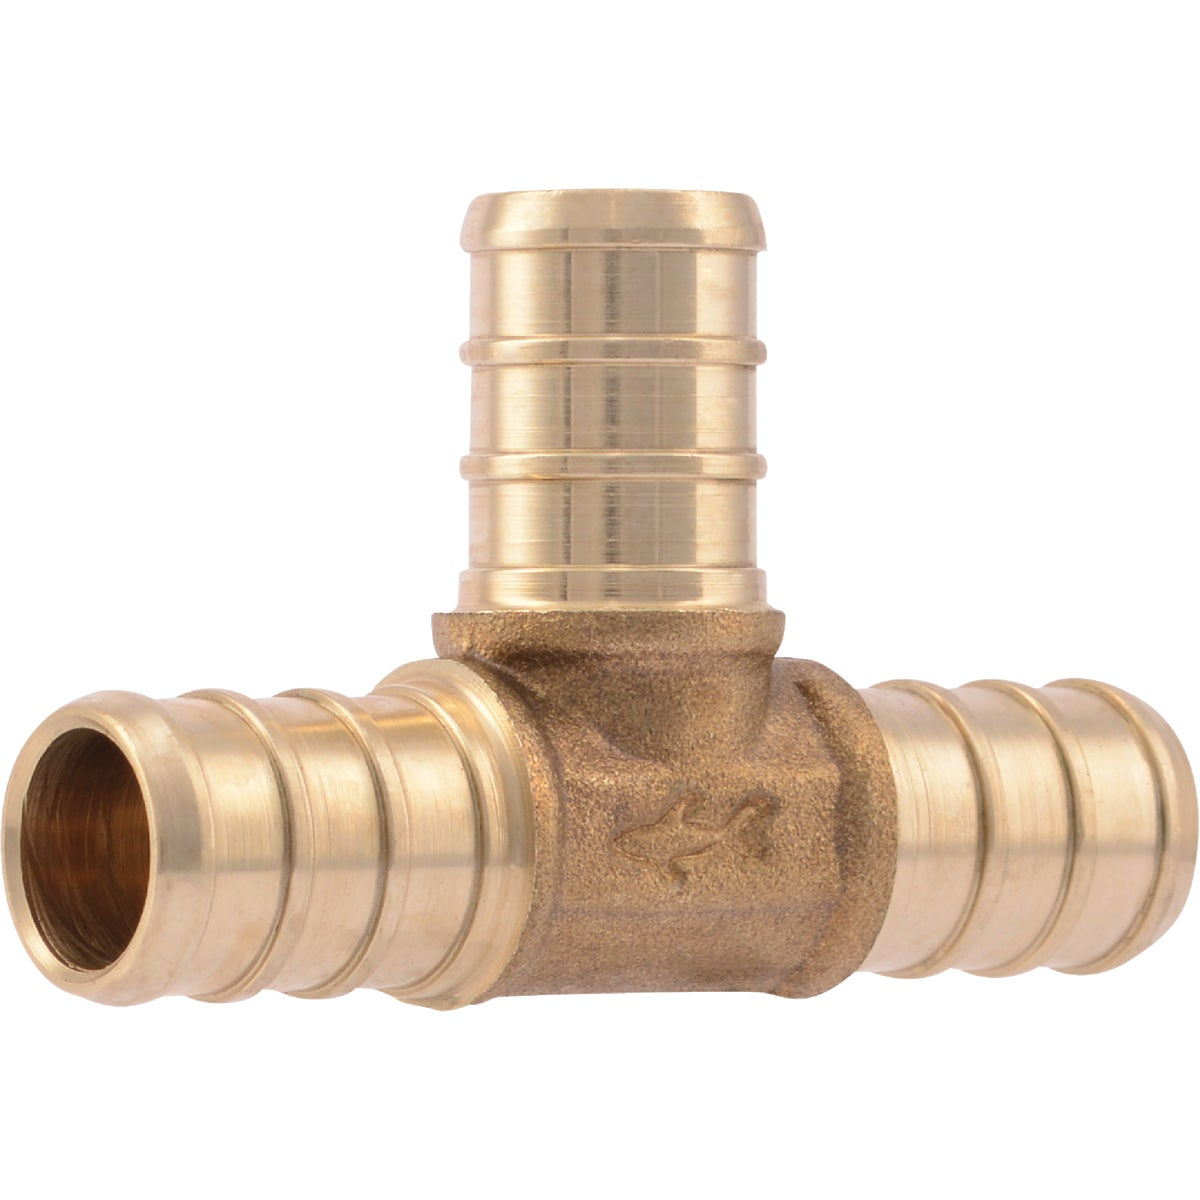 "10PK 1/2""CF BRASS TEE - LFWP-18B-08PB by Watts Pex"